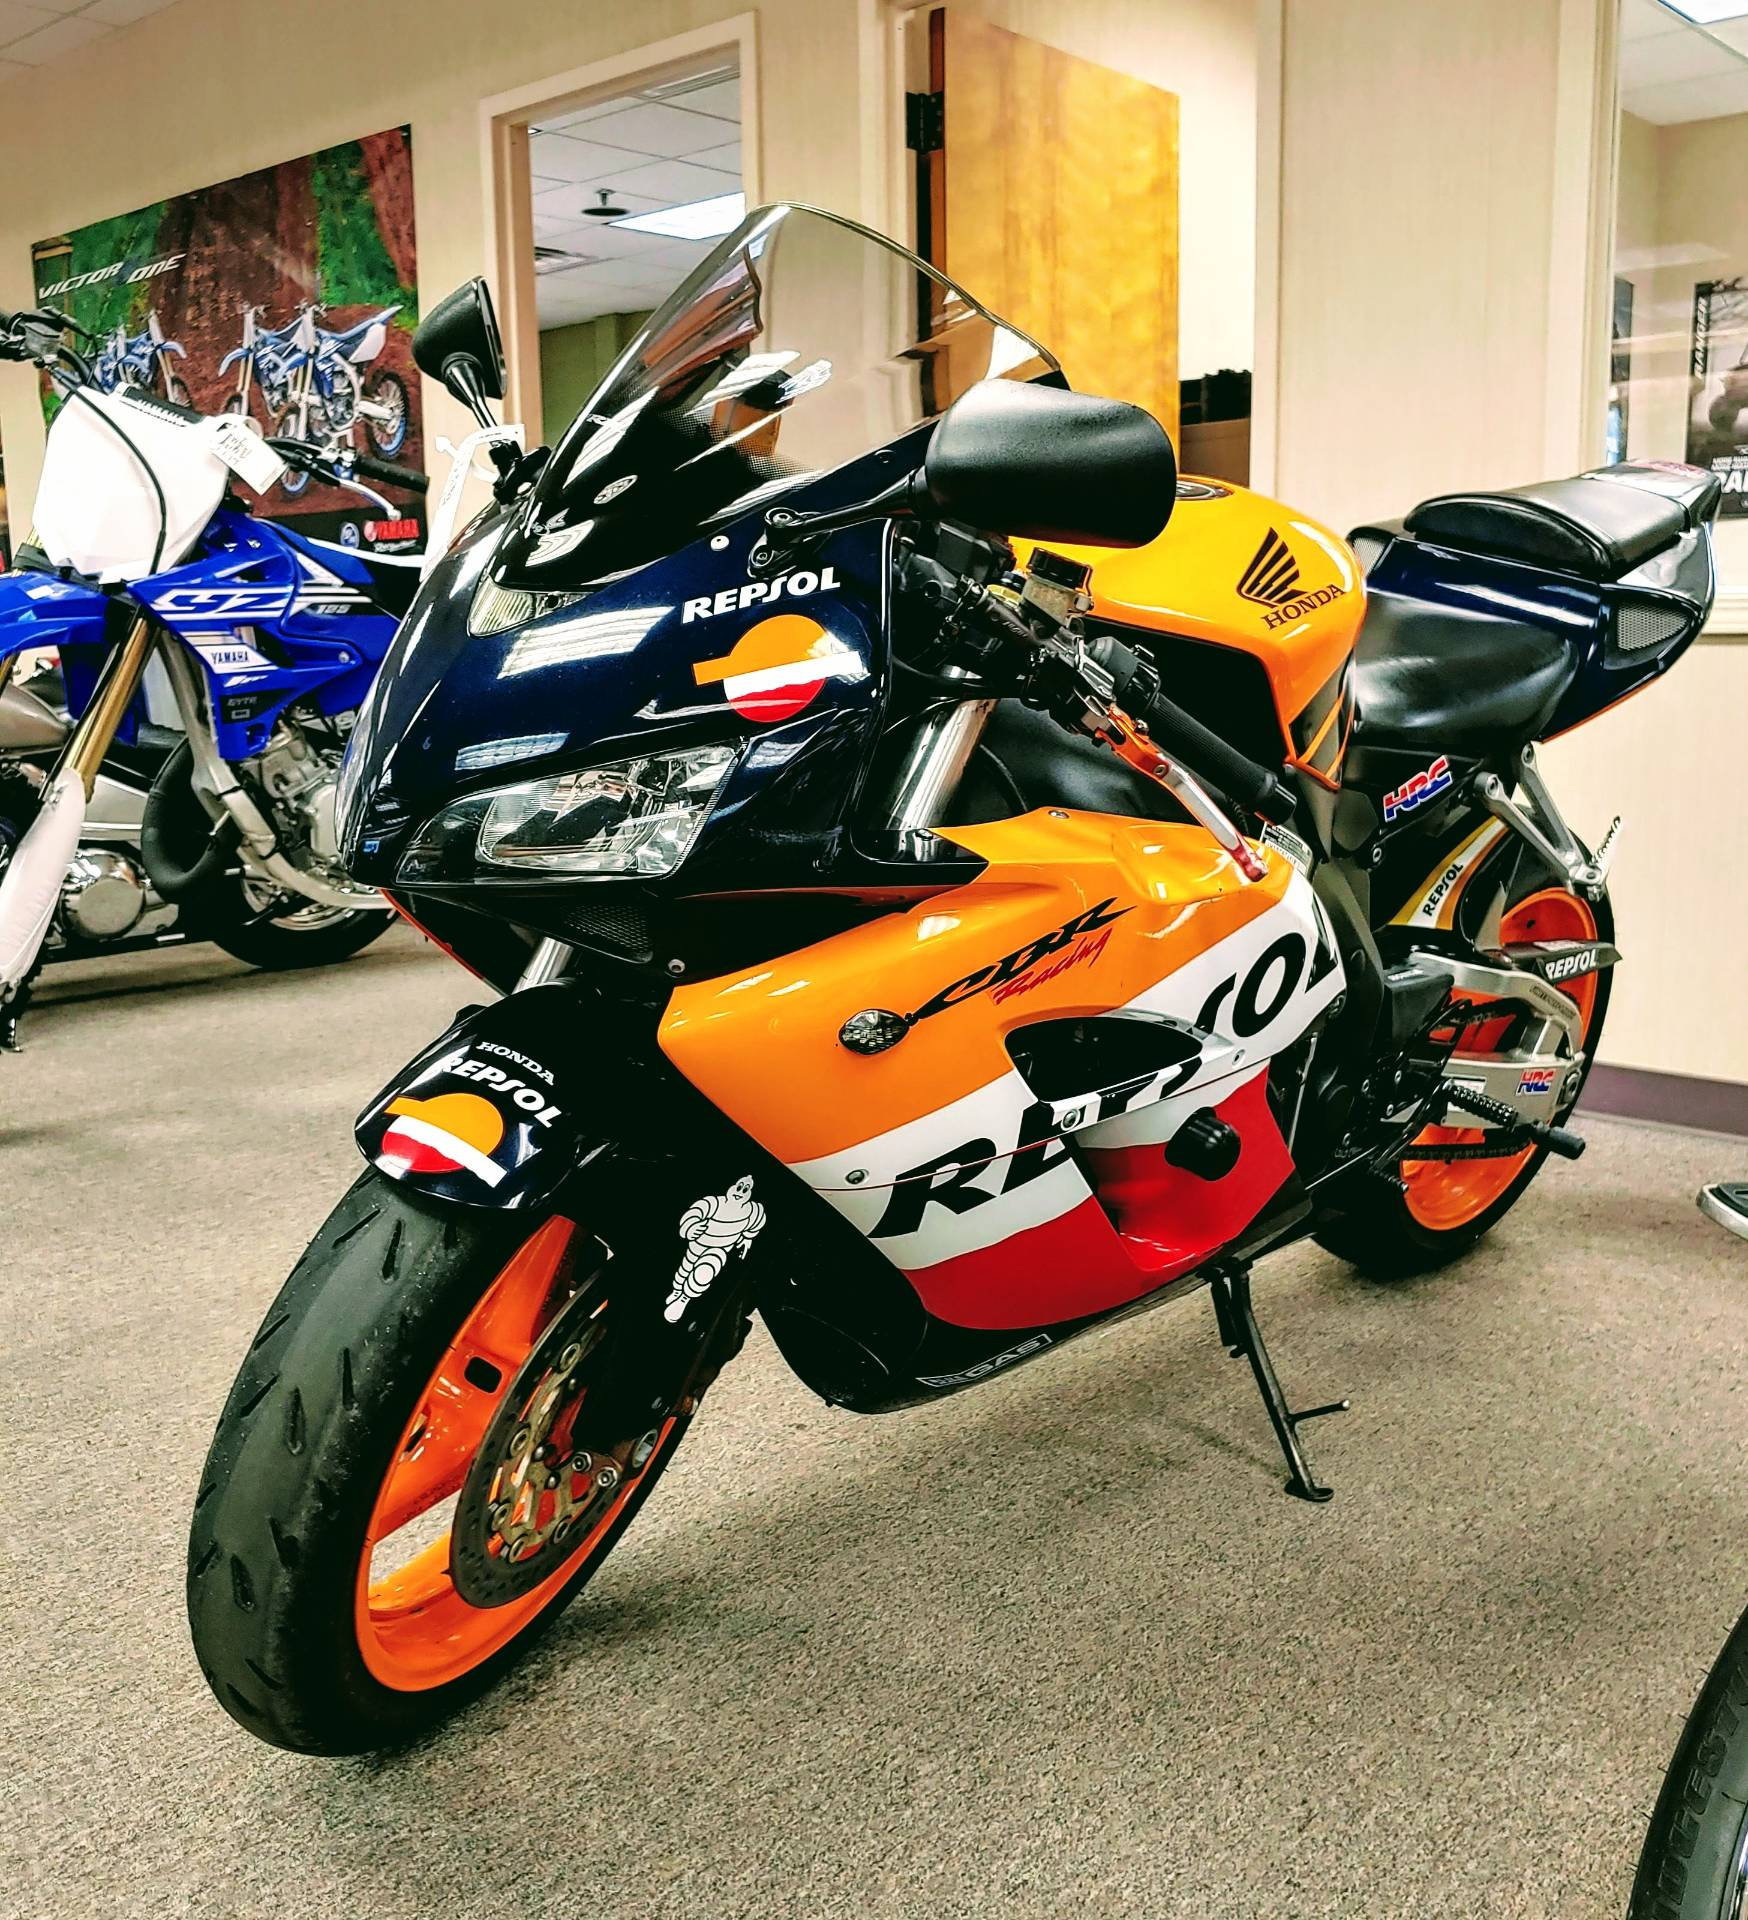 Used 2005 Honda Cbr1000rr Repsol Motorcycles In Statesville Nc